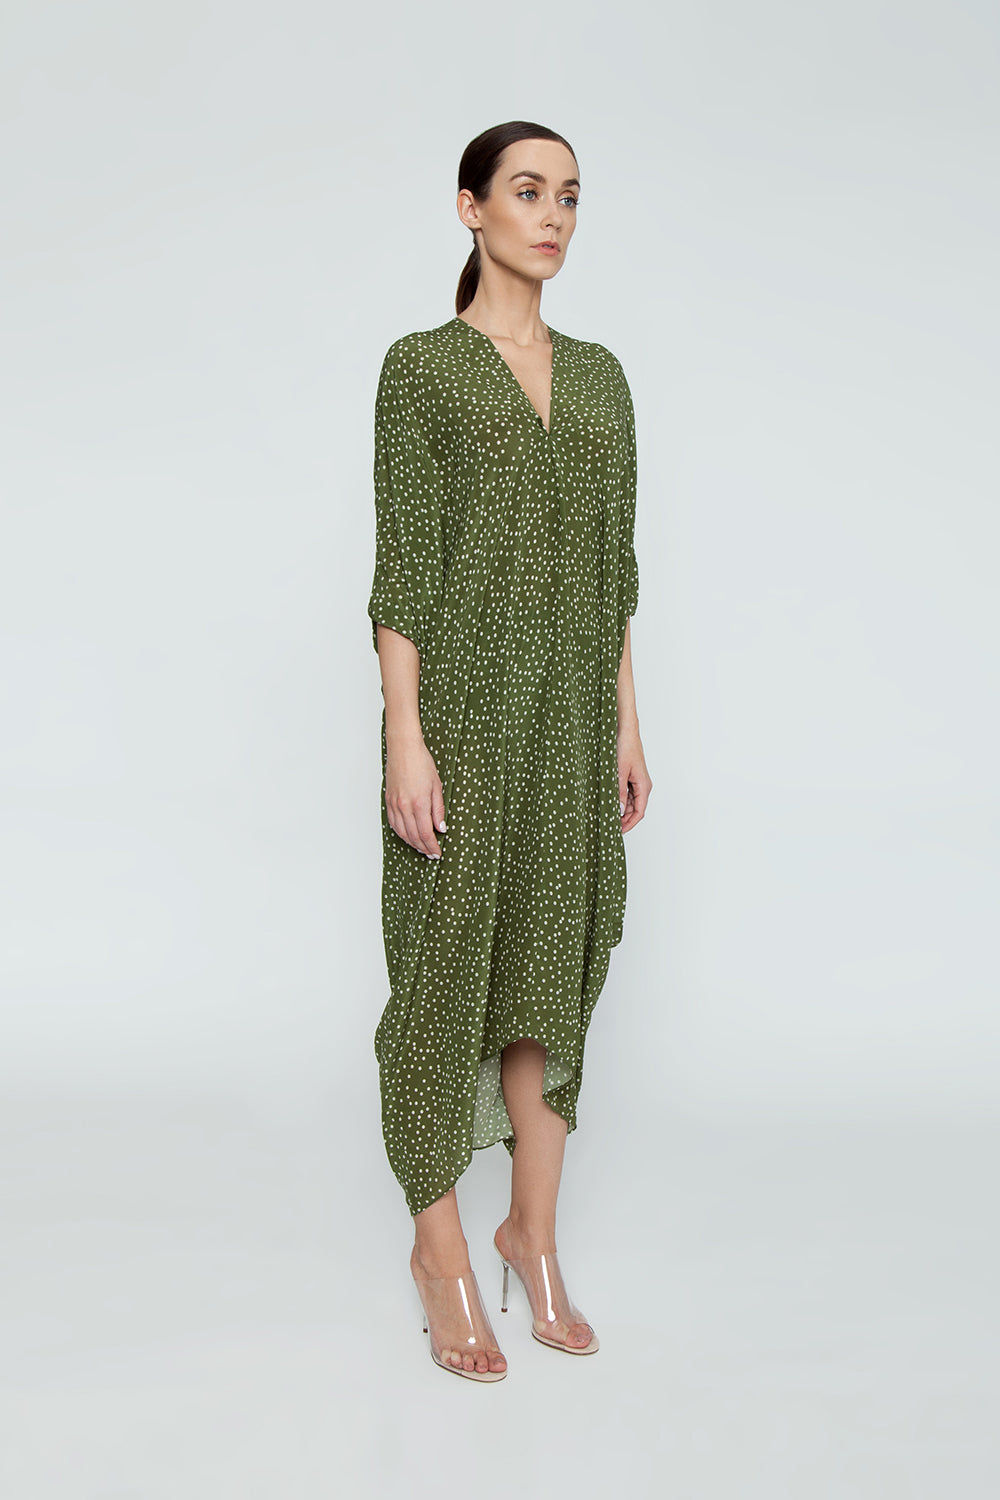 ADRIANA DEGREAS Silk Crepe De Chine Long Kaftan - Mille Punti Green Dot Print Cover Up | Mille Punti Green Dot Print| Adriana Degreas Silk Crepe De Chine Long Kaftan - Mille Punti Green Dot Print Long kaftan V neckline  Flowy sleeves  Cut out back detail  Side View